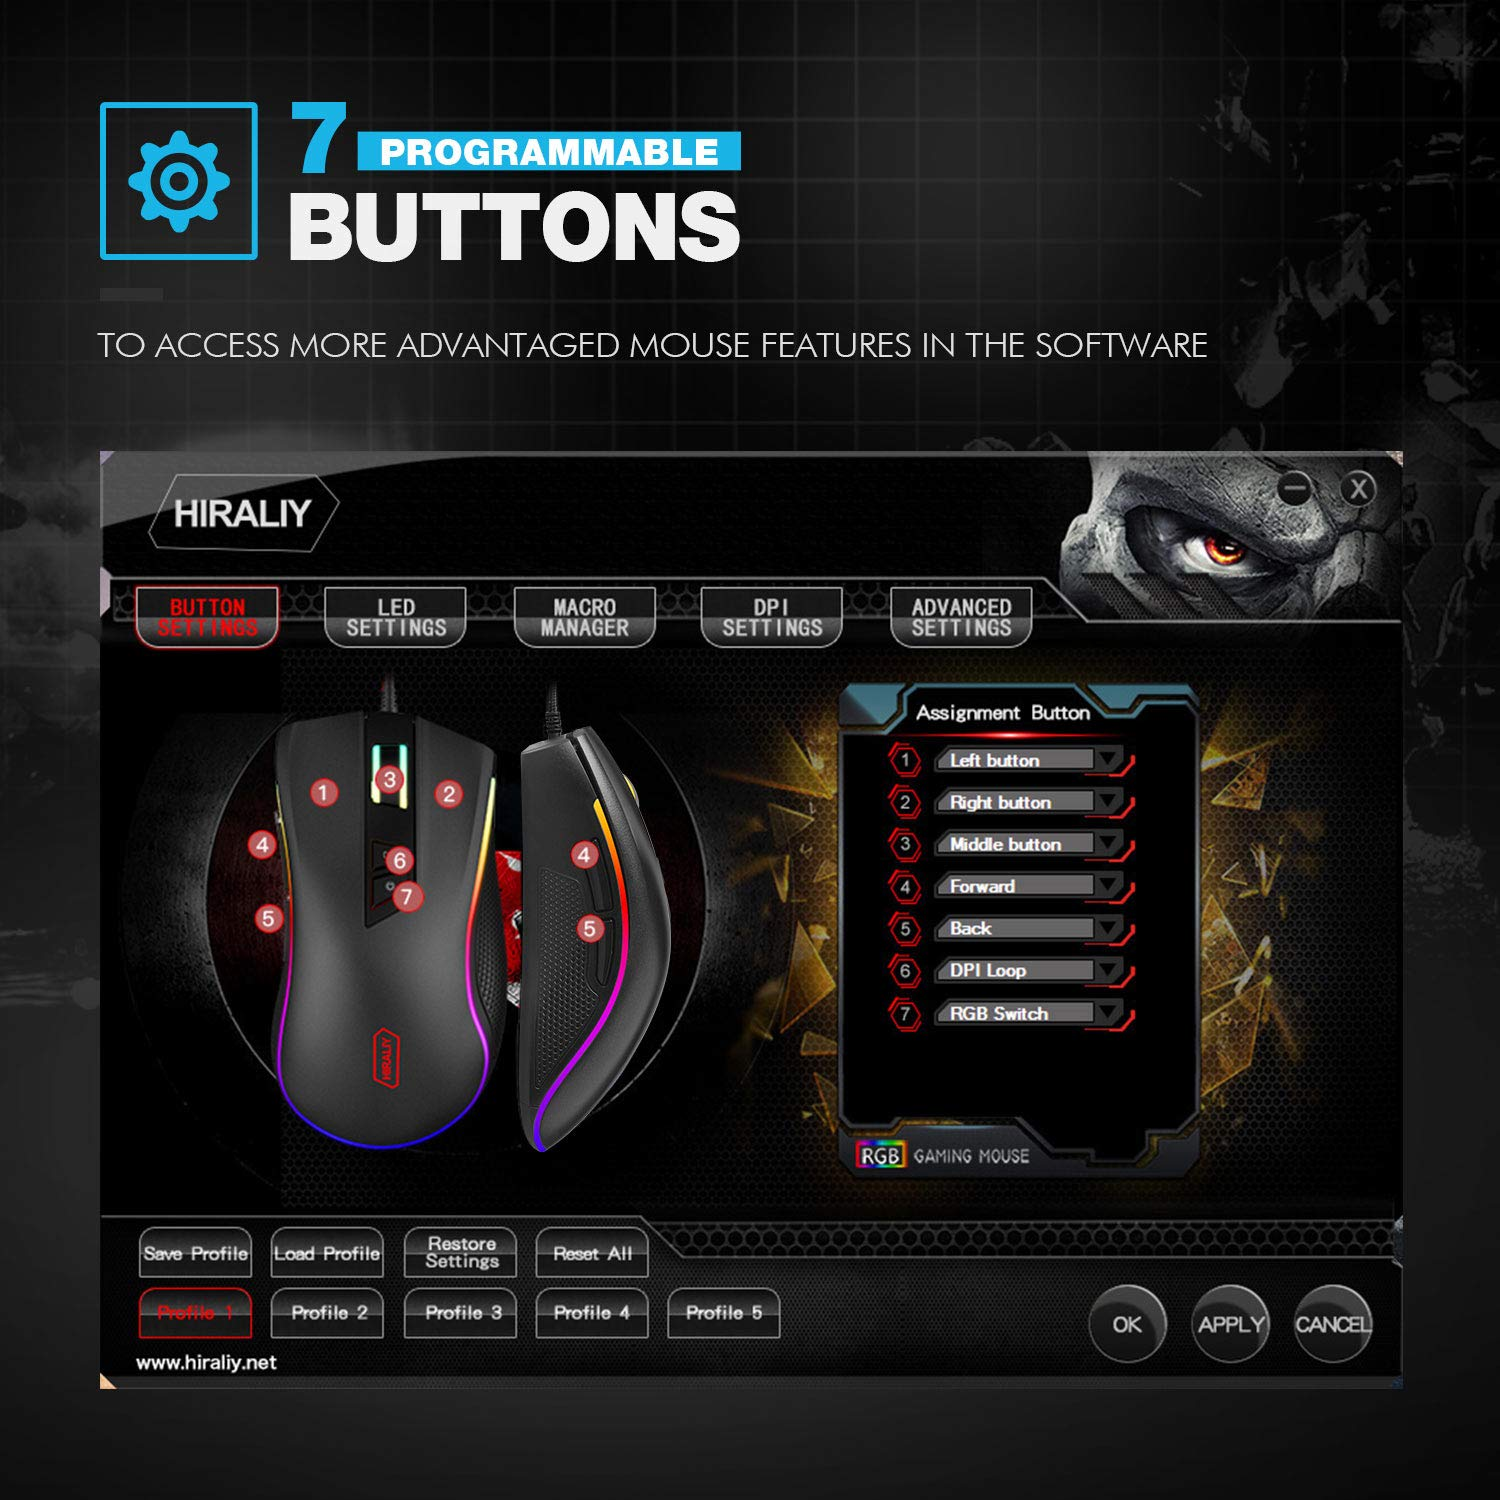 Programmable RGB Gaming Mouse, HIRALIY 5000 DPI Wired RGB Backlit Wired Optical Gaming Mouse (F300): Amazon.es: Informática